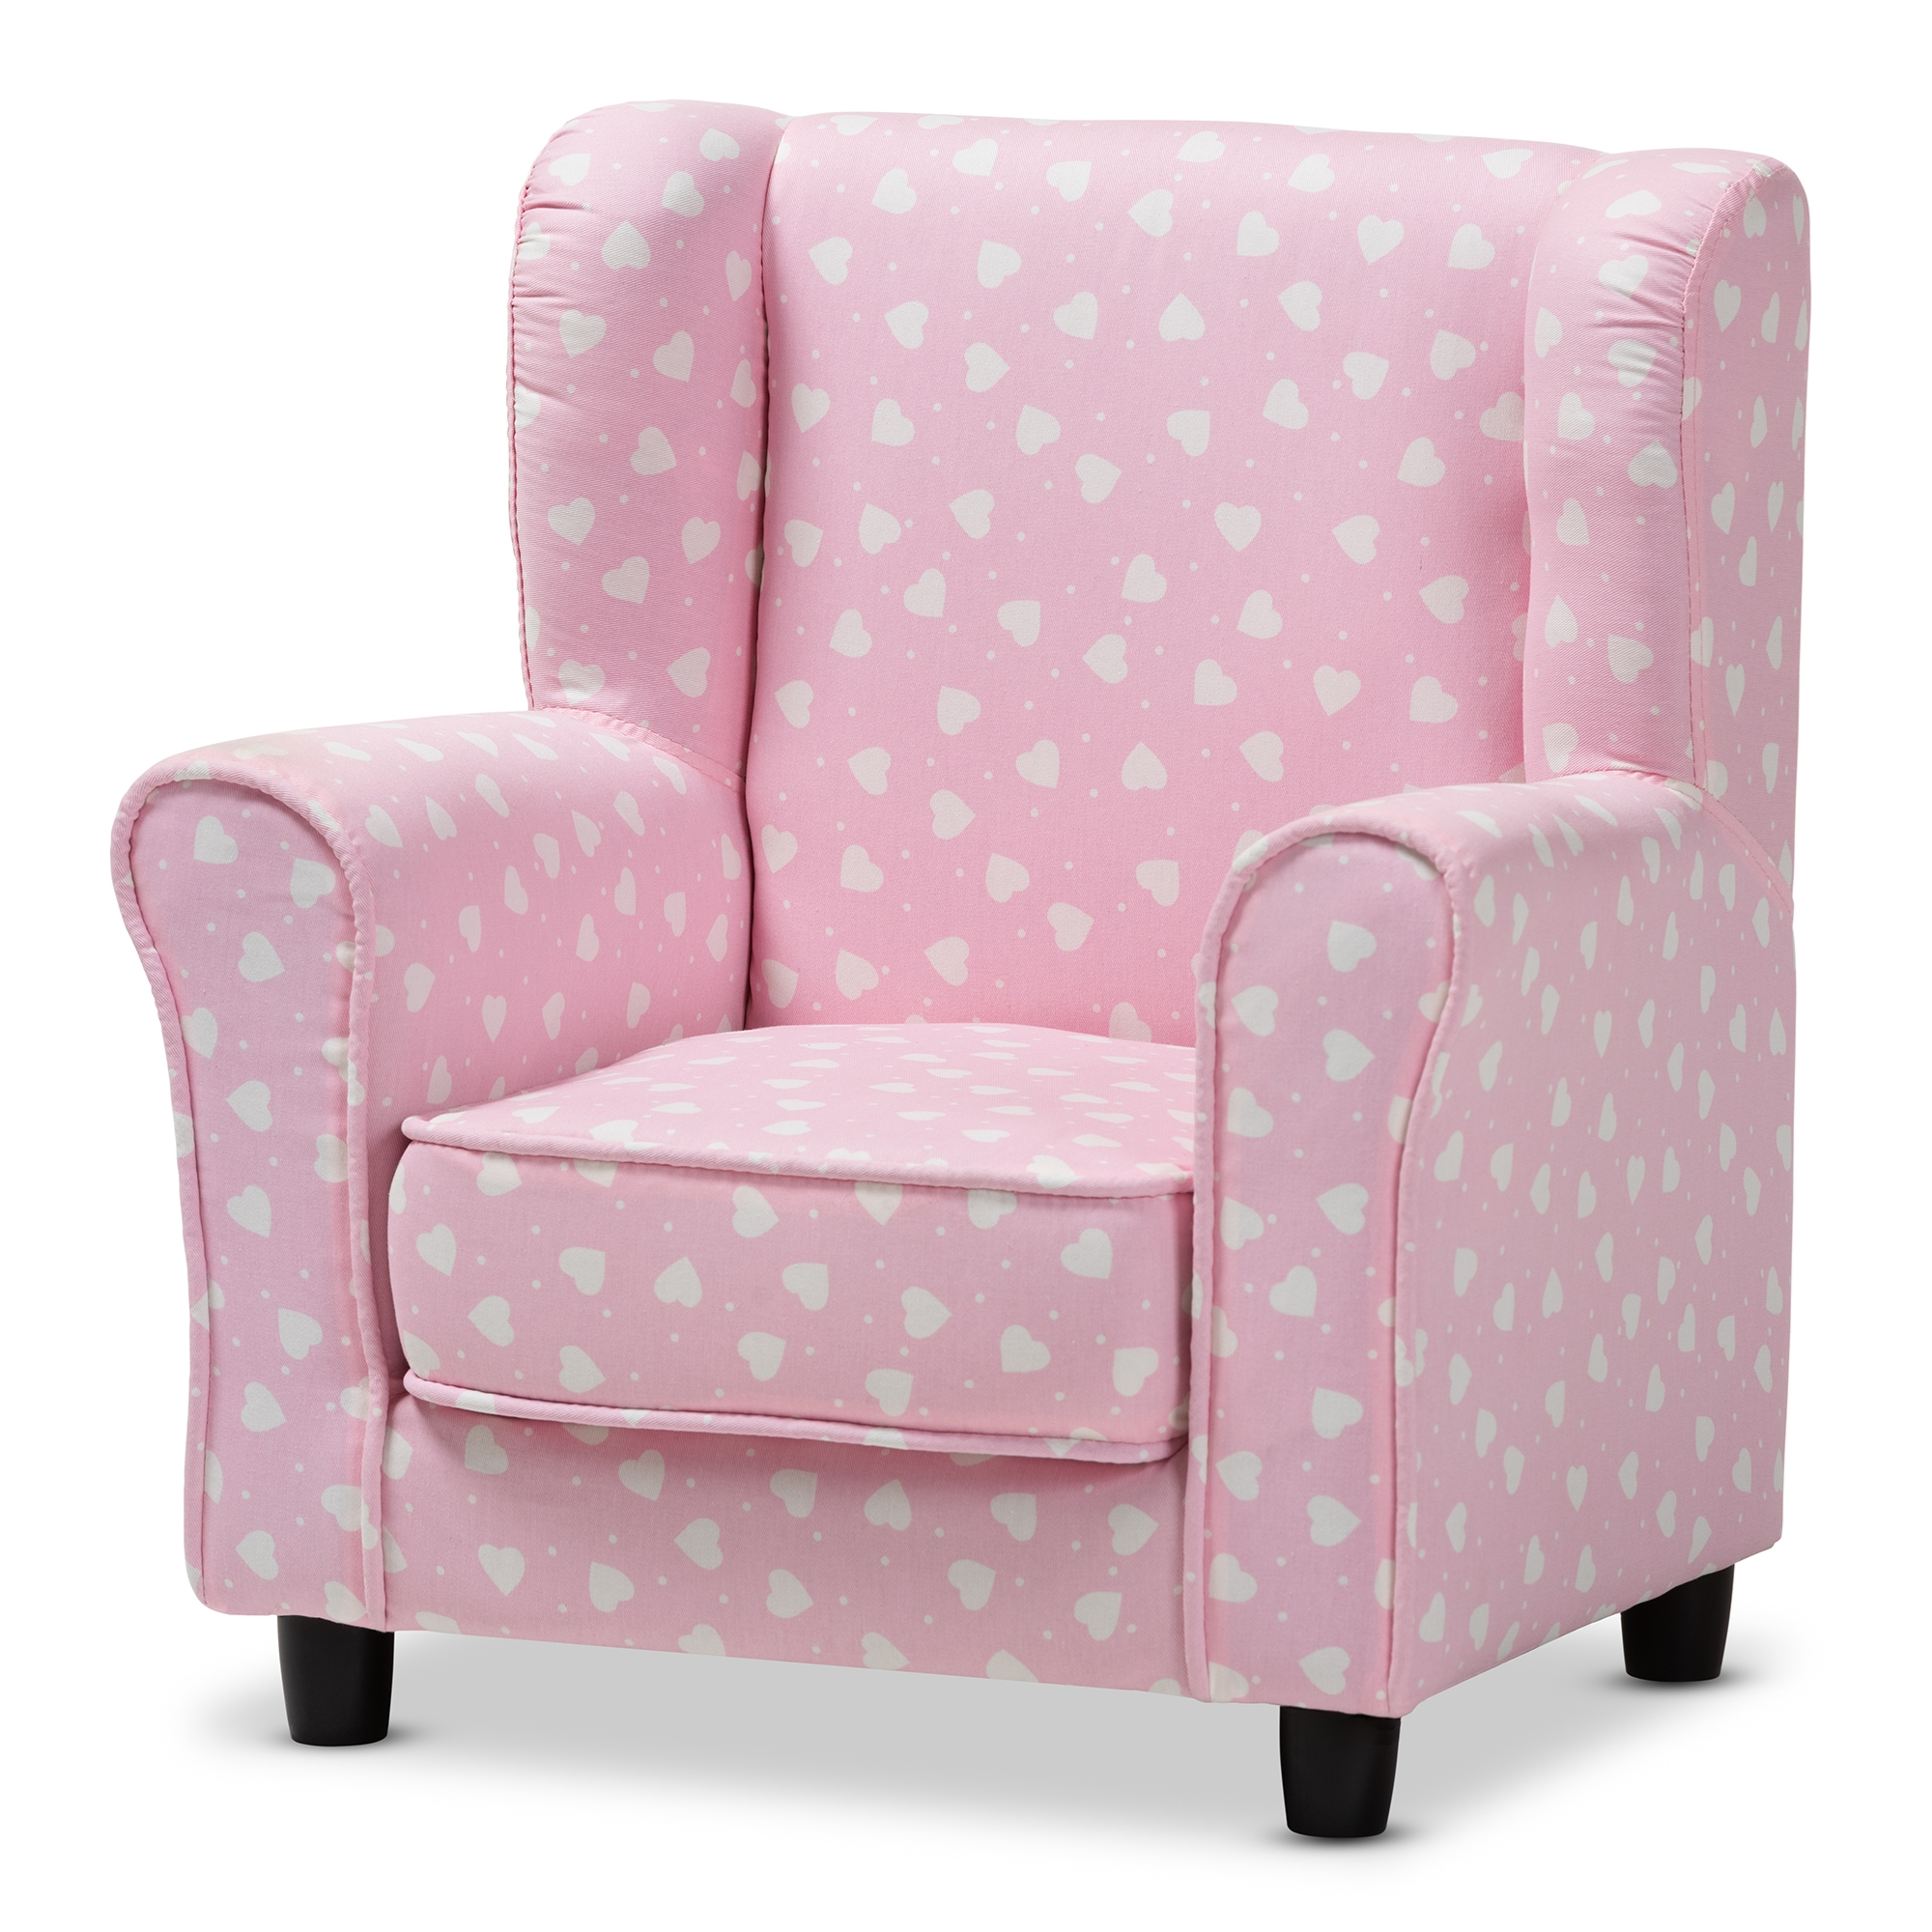 Baxton Studio Selina Modern And Contemporary Pink And White Heart Patterned  Fabric Upholstered Kids Armchair ...